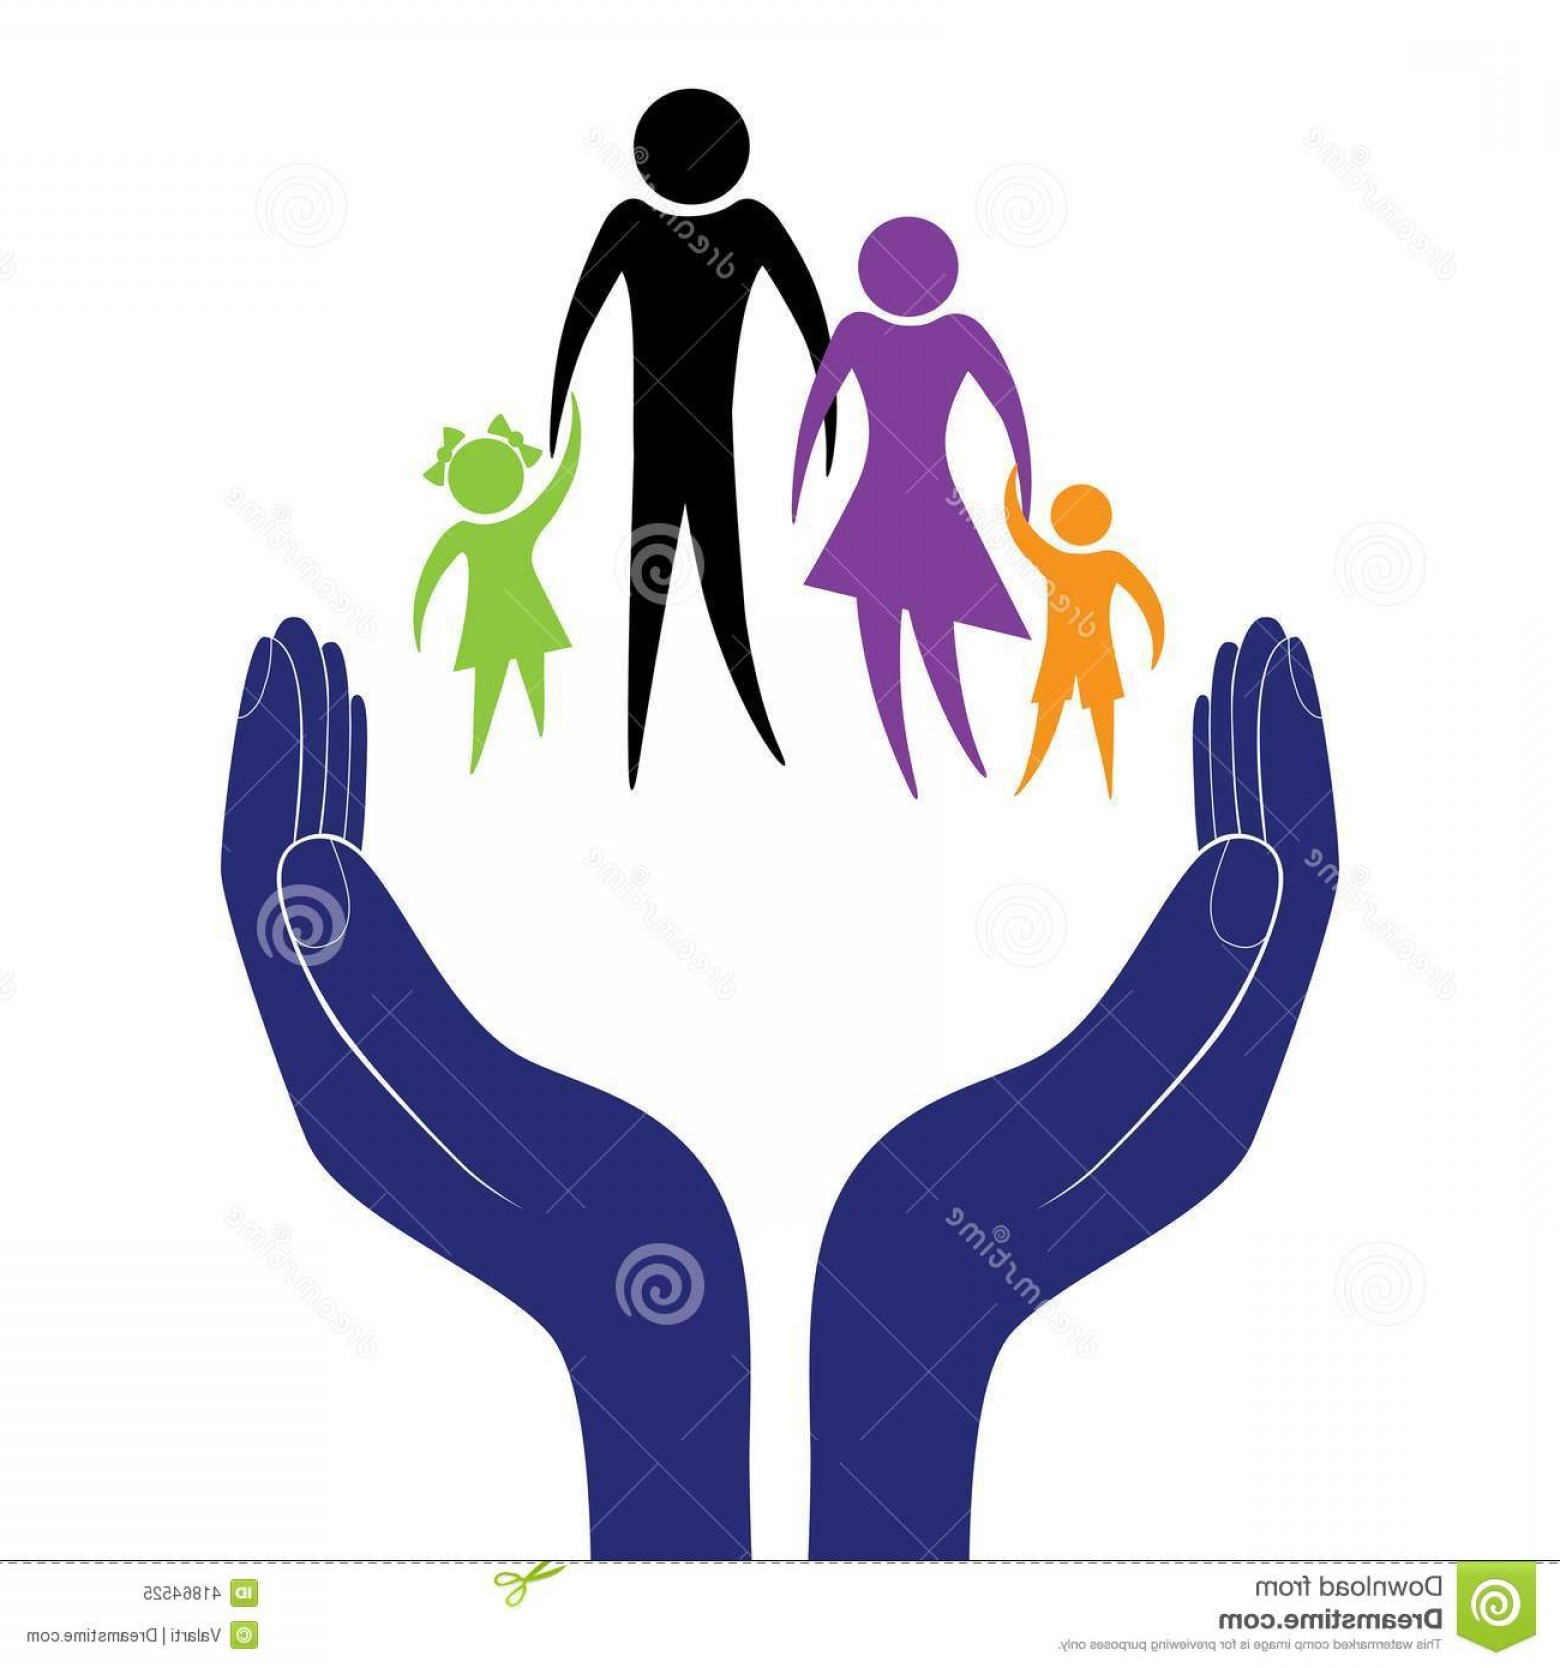 Vector Health Insurance: Stock Illustration Family Care Vector Hand People Encouragement Help Support Moral Life Insurance Health Social Person Image